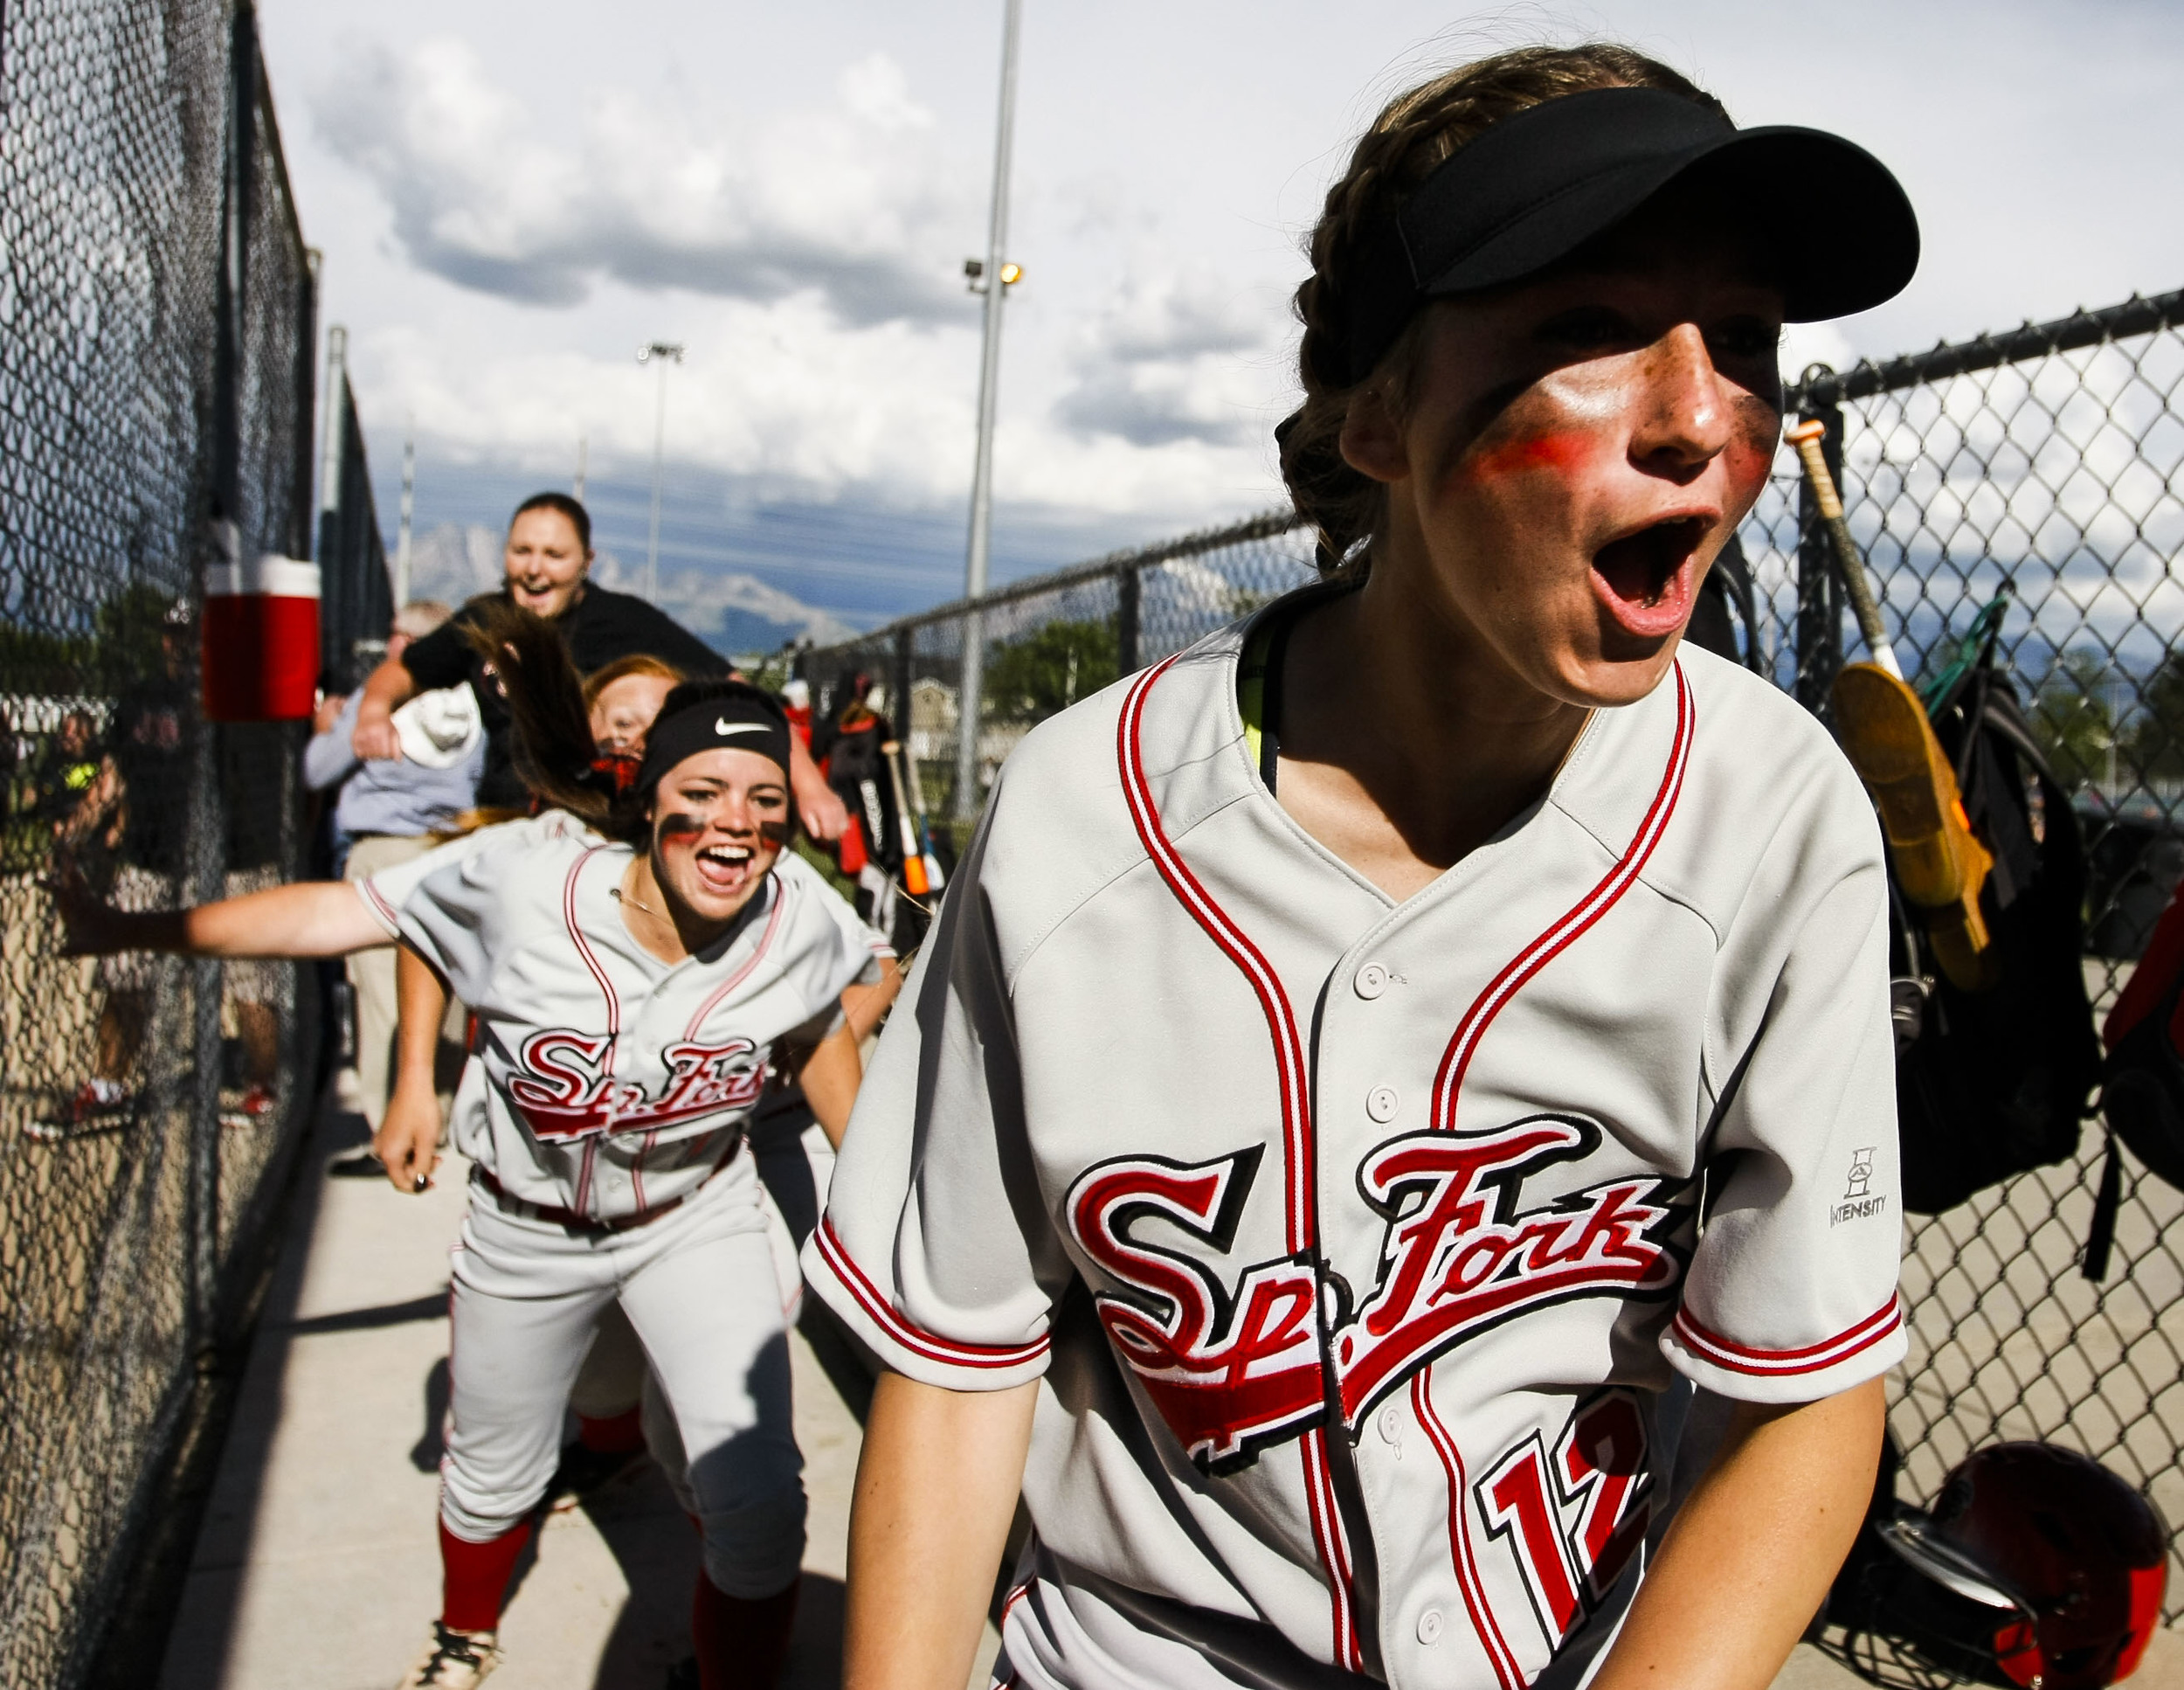 Spanish Fork's Morgan Scott, right, rushes the field during the 4A softball championship game against the Maple Mountain Golden Eagles in Taylorsville, Utah, on Thursday, May 26, 2016. The Spanish Forks beat Maple Mountain 5-2.